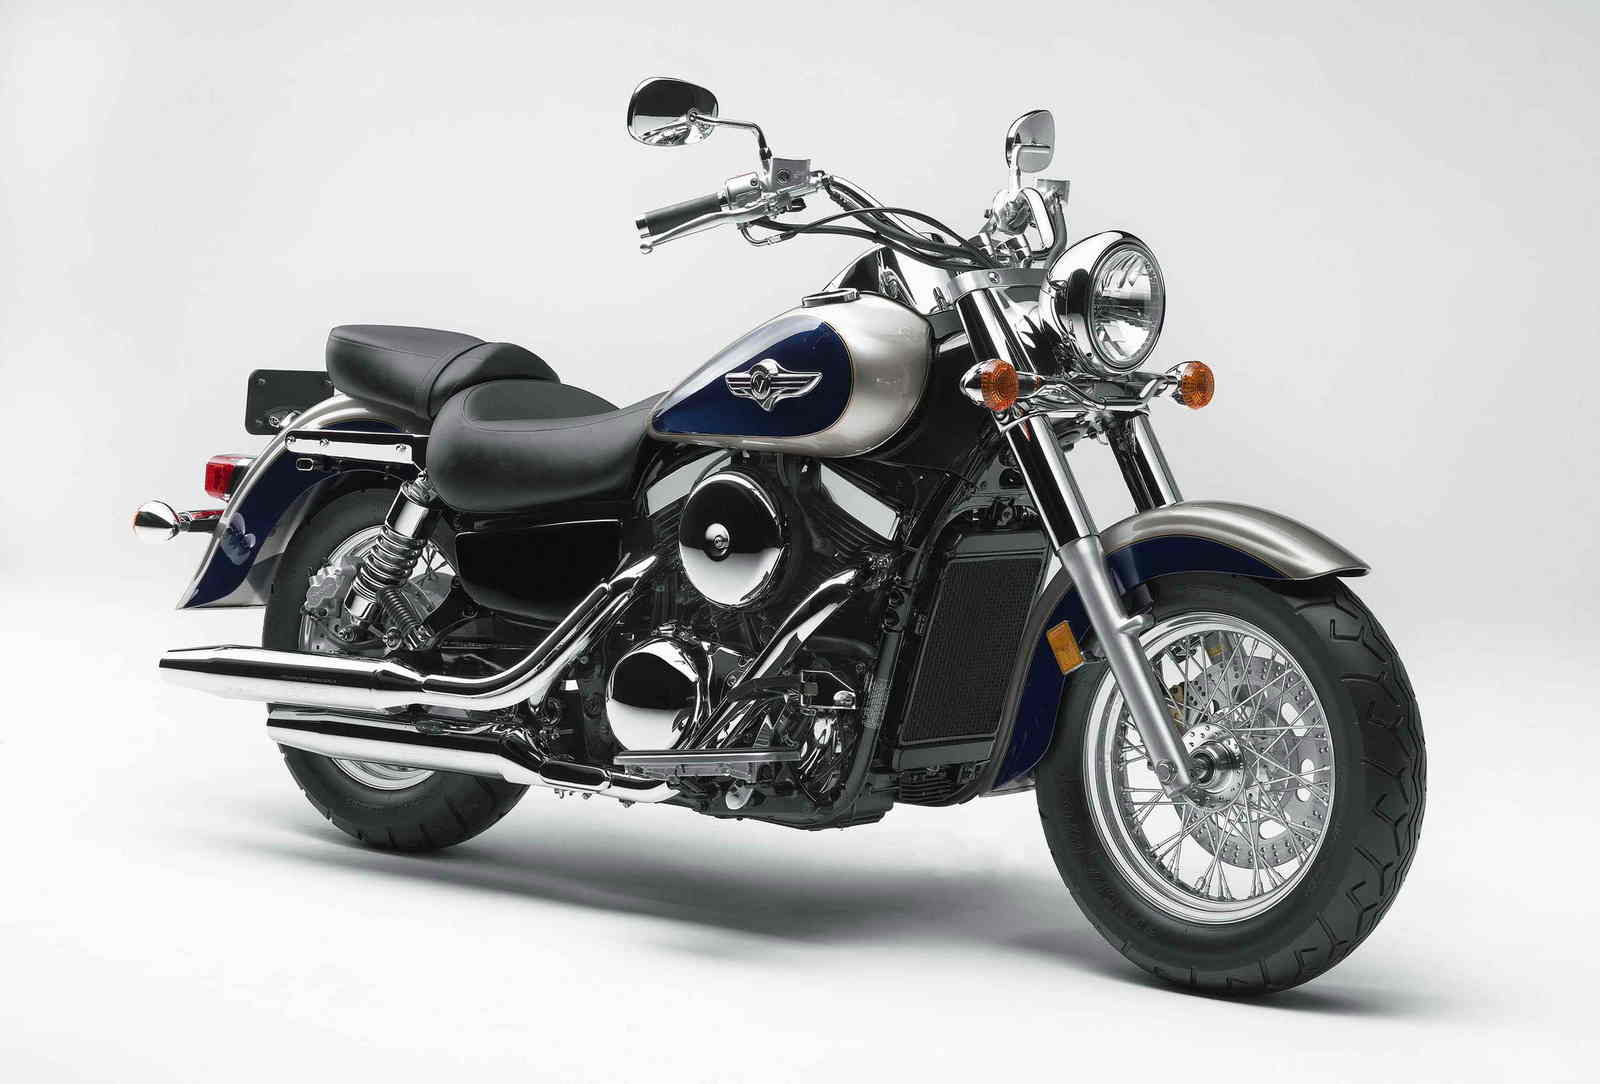 2008 kawasaki vulcan 1500 classic picture 177437. Black Bedroom Furniture Sets. Home Design Ideas